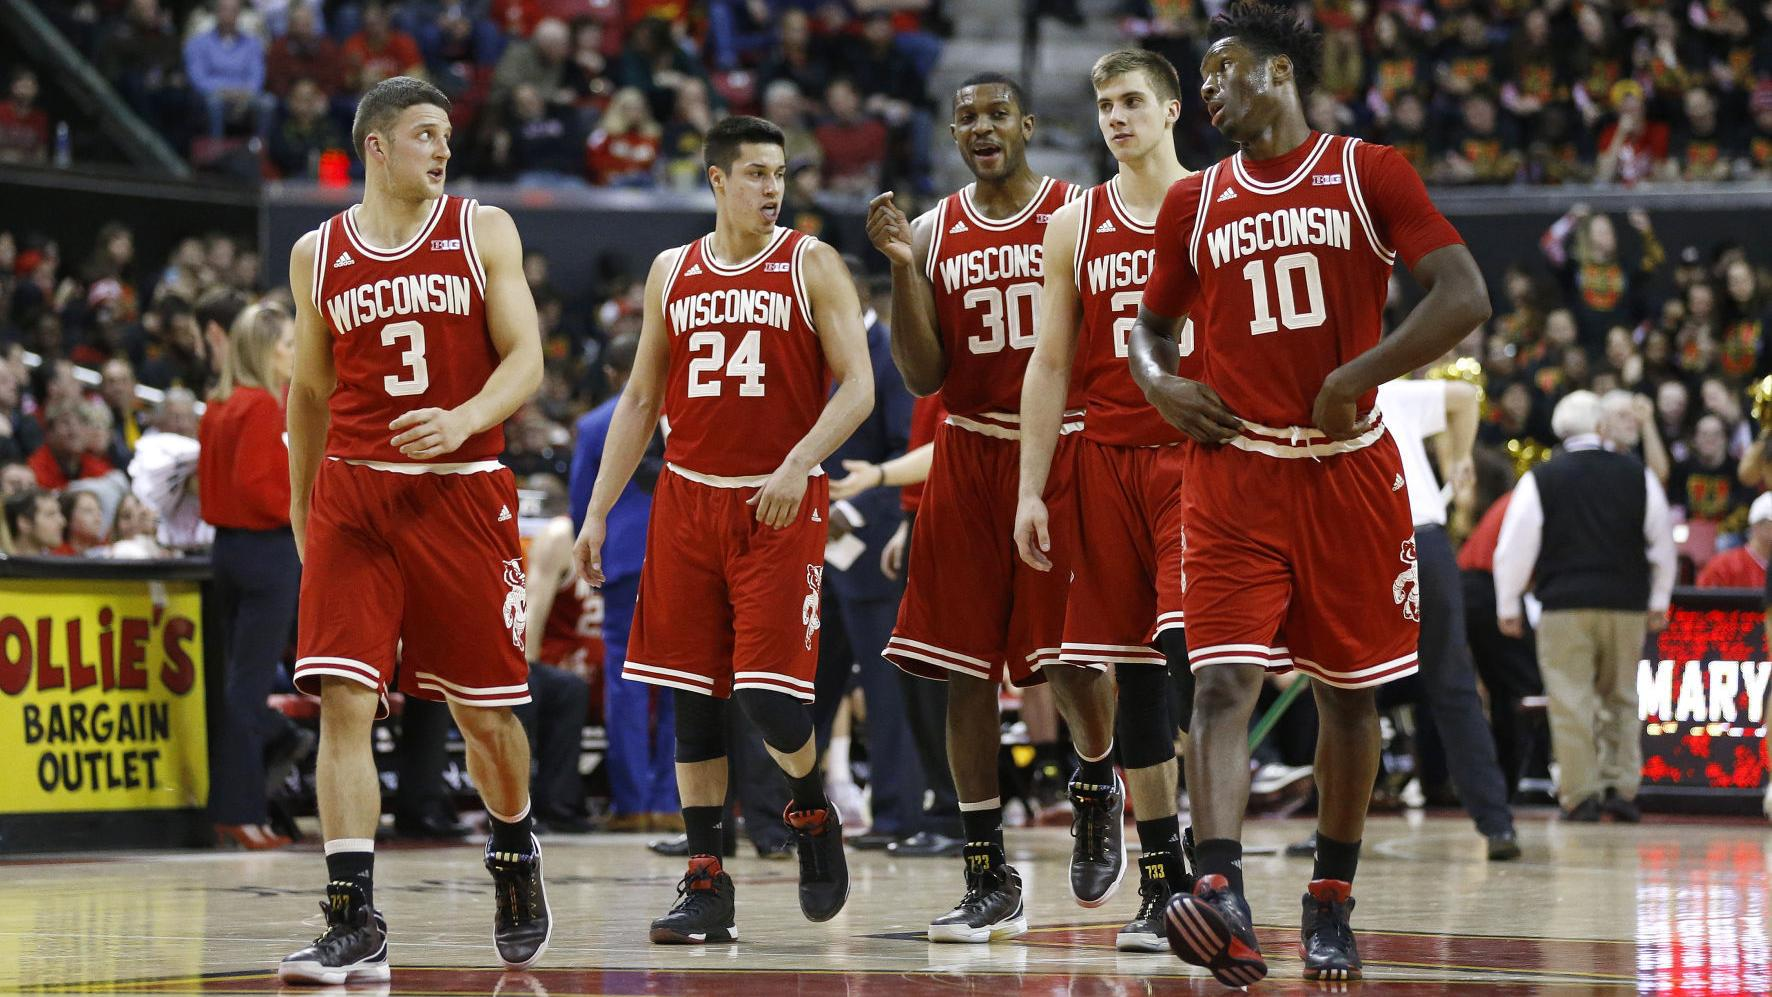 Get the latest Wisconsin Badgers Basketball news photos rankings lists and more on Bleacher Report